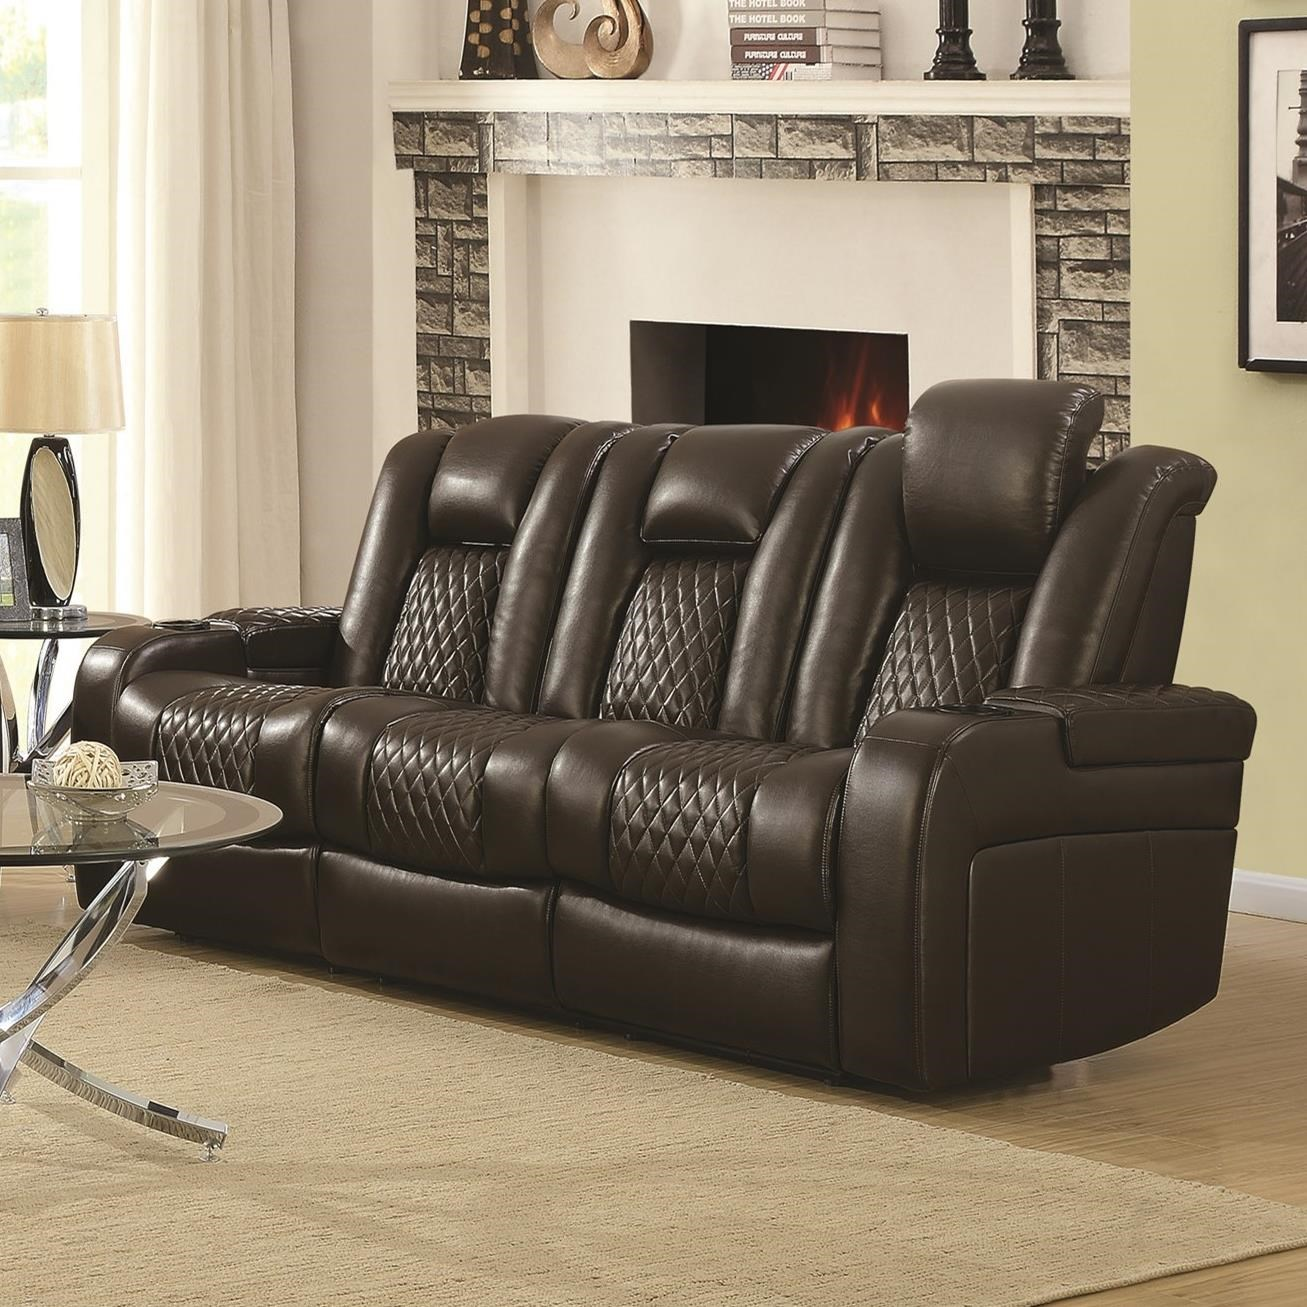 Delangelo Power Reclining Sofa by Coaster at Lapeer Furniture & Mattress Center